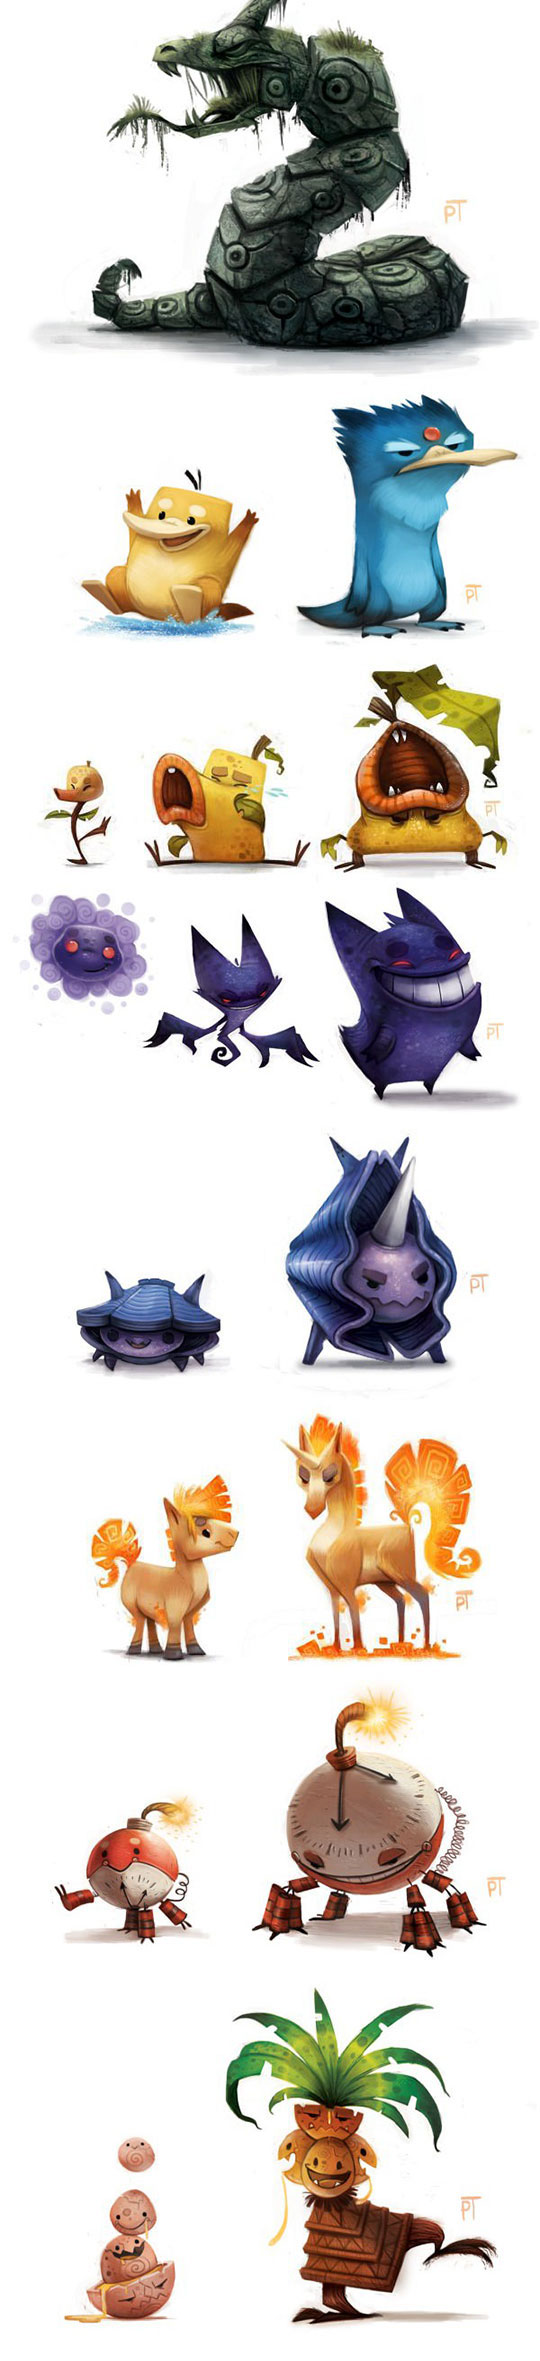 cool-Pokemon-re-design-characters-art